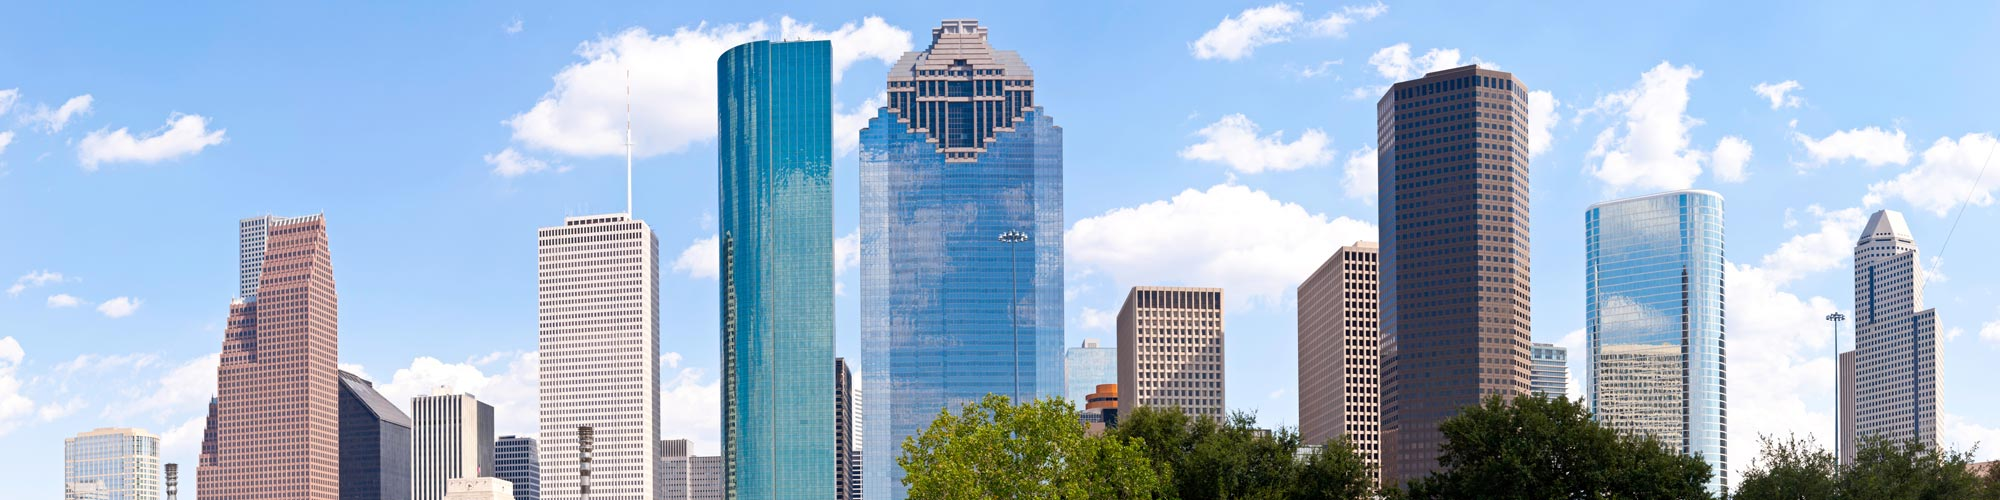 houston-texas_centre-ville